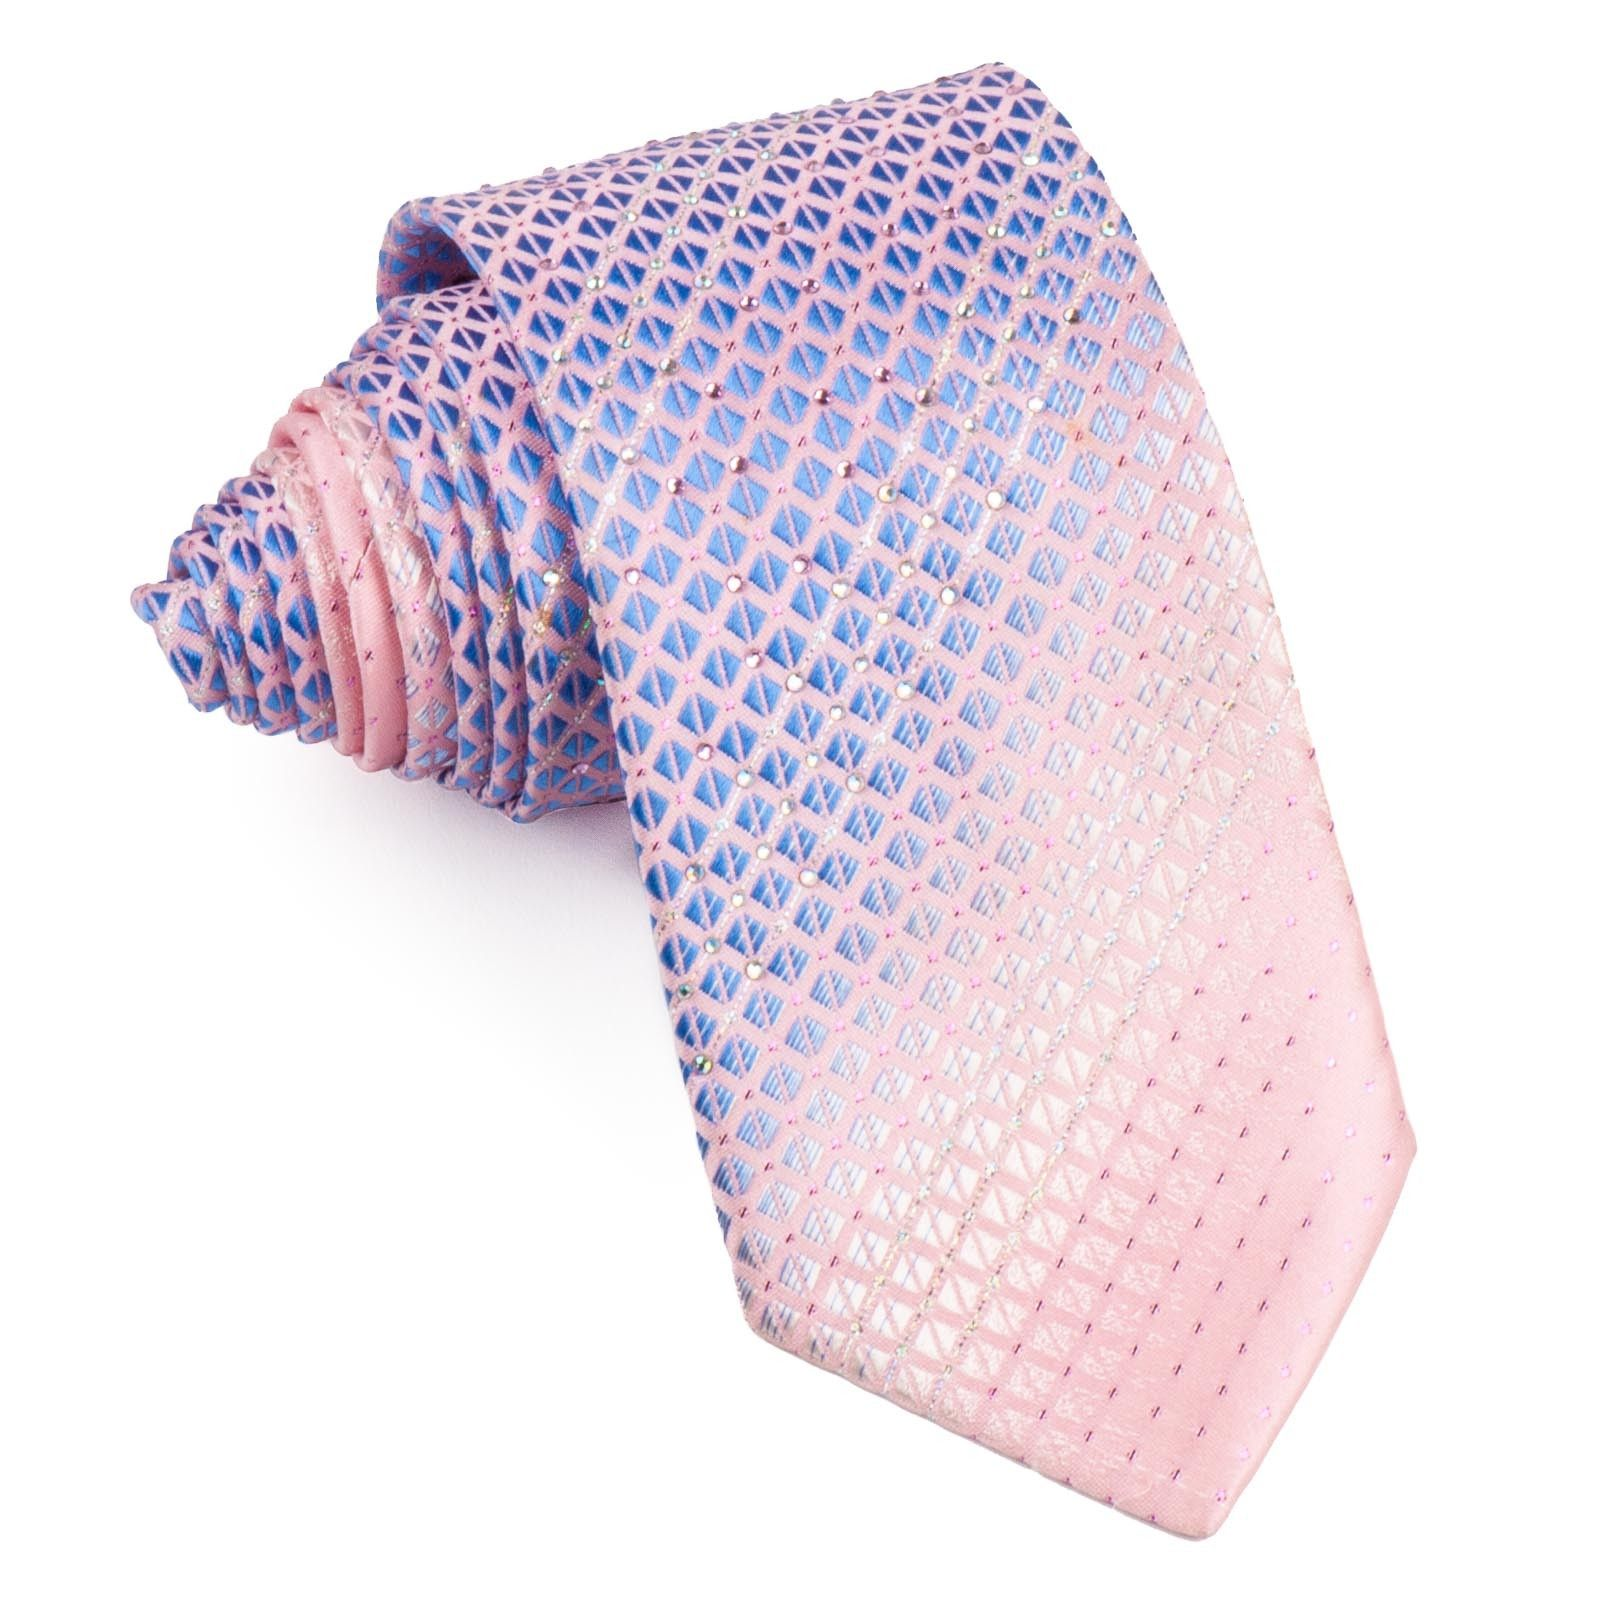 079a590ee077 Pierre Cardin Men's Silk Rhinestone Neck Tie Blue Checked On Pink With  Silver Sparkles